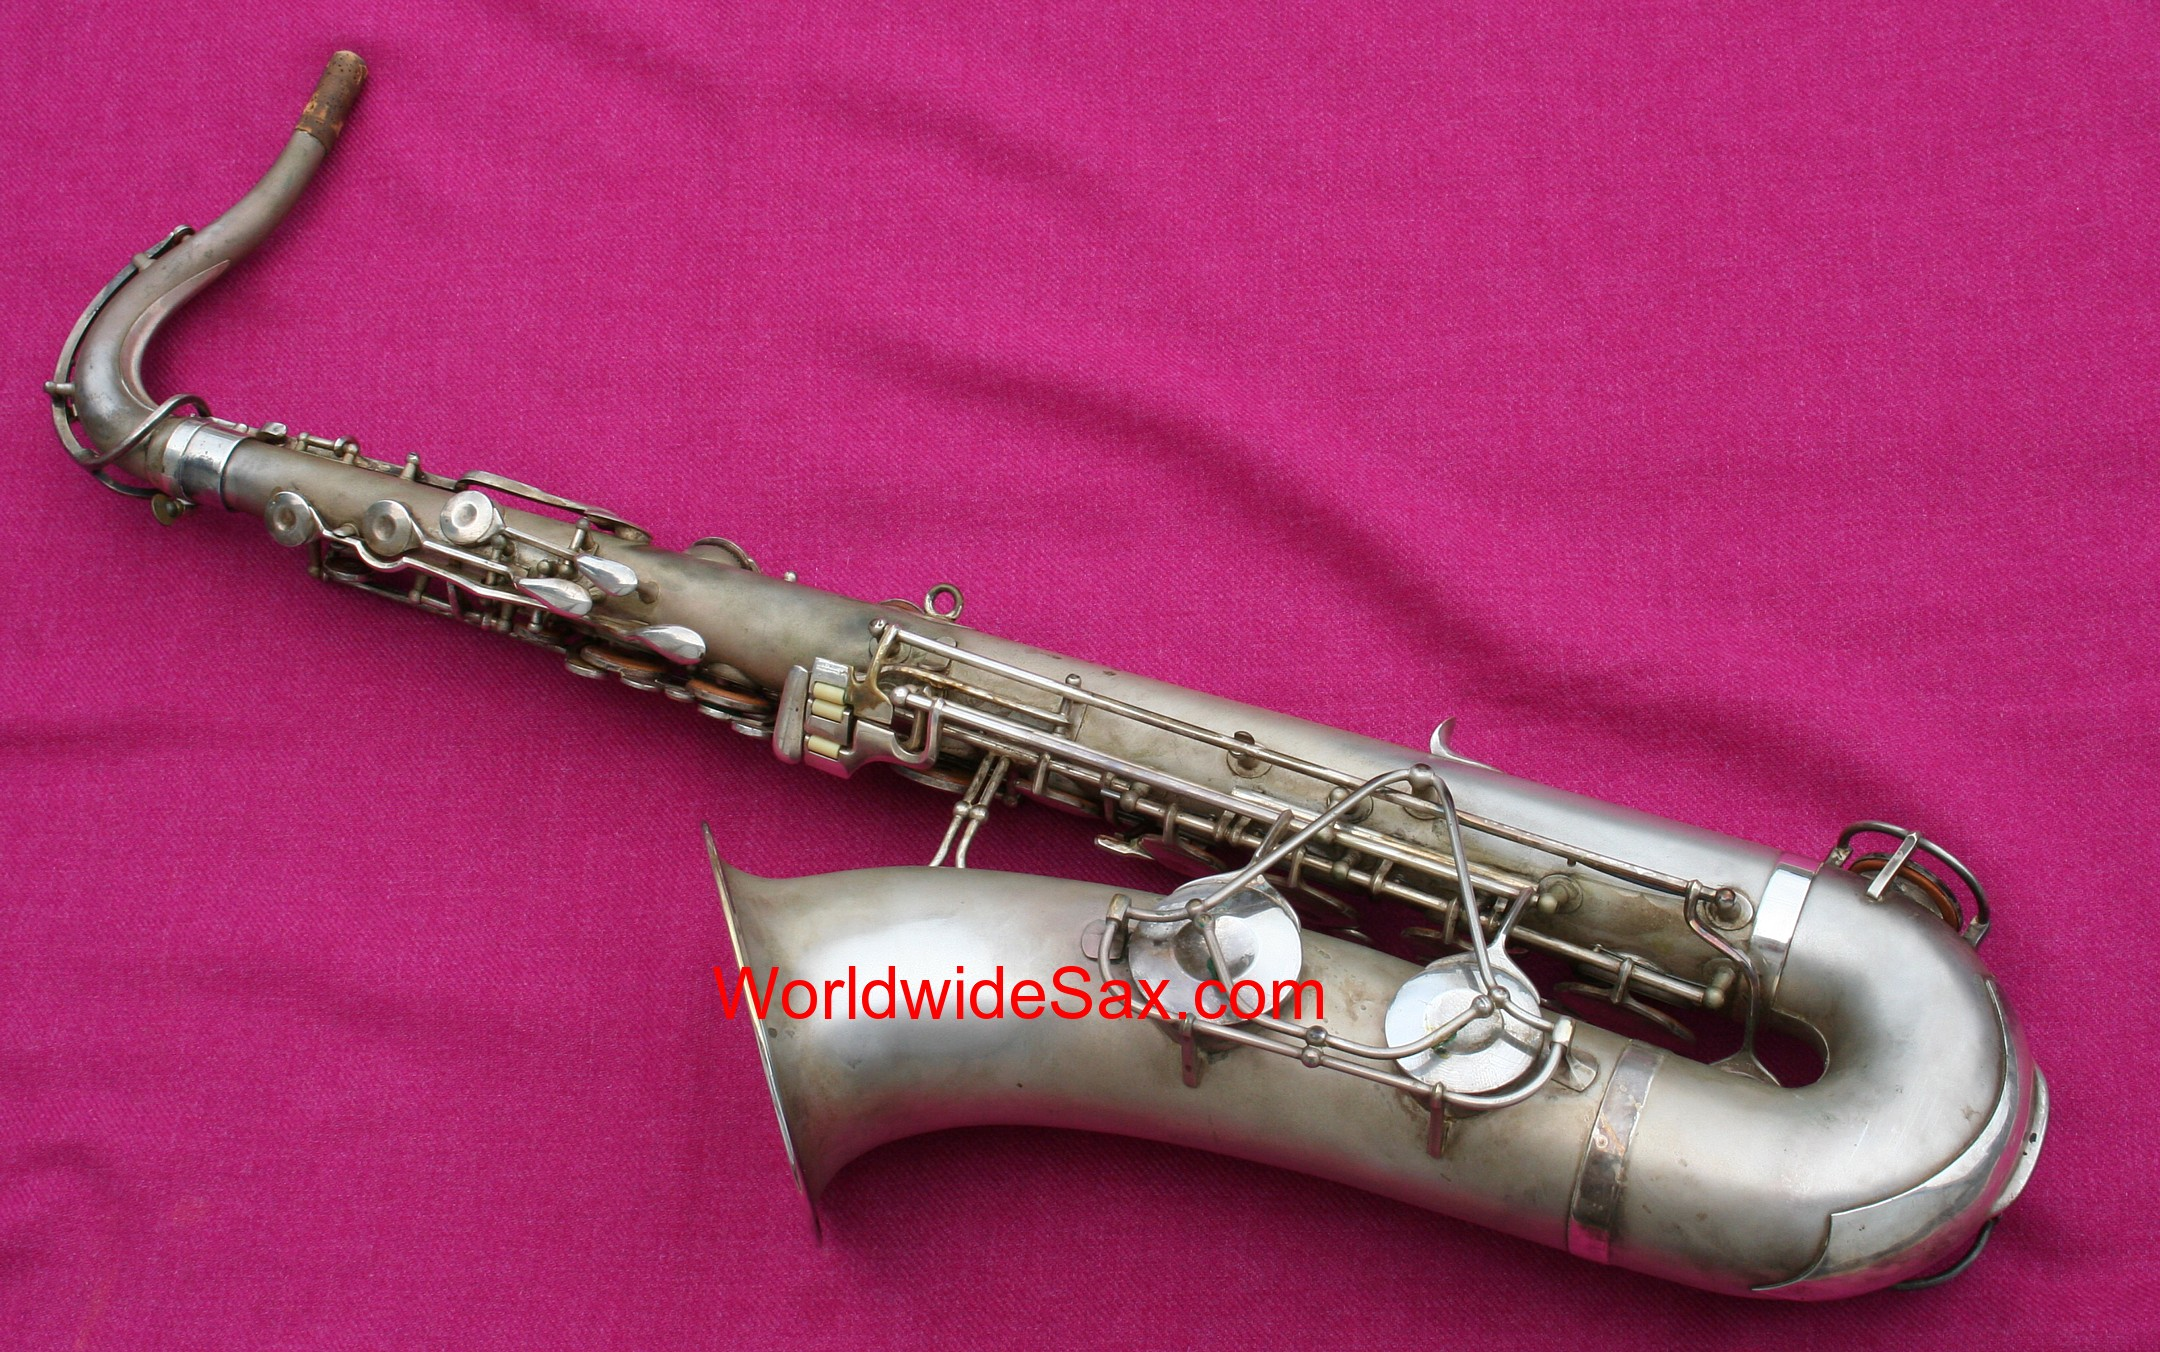 Olds 1940s 'Super' Bb Tenor, Silver #1,08x (Archived)